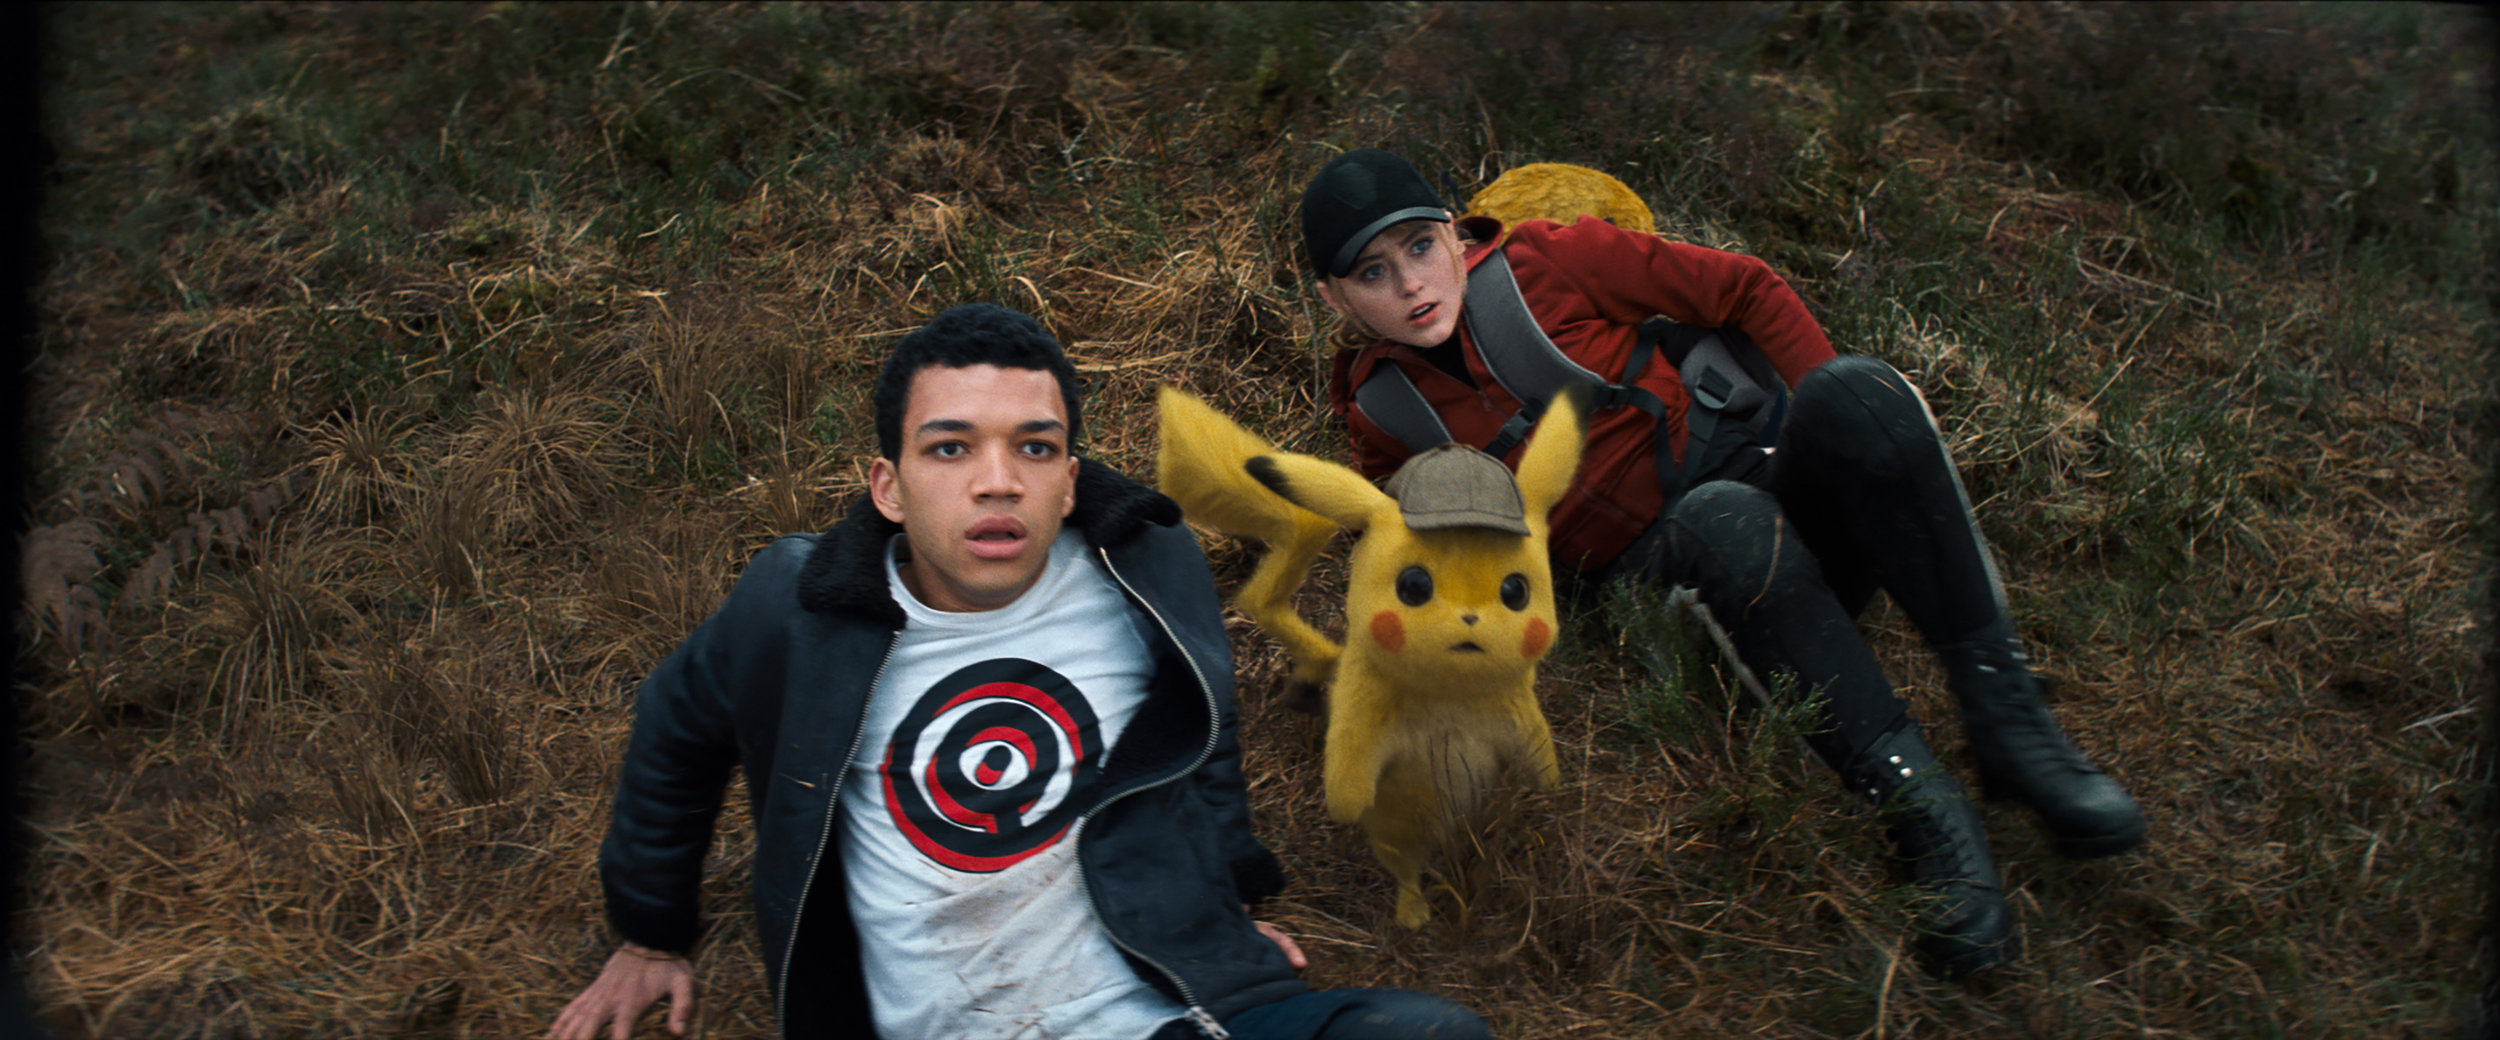 "Tim Goodman (Justice Smith, left) and Lucy Stevens (Kathryn Howard, right) team up with a sleuthing Pikachu (voiced by Ryan Reynolds) when things go awry, in the action-adventure ""Pokémon Detective Pikachu."" (Photo courtesy of Warner Bros. Pictures.)"